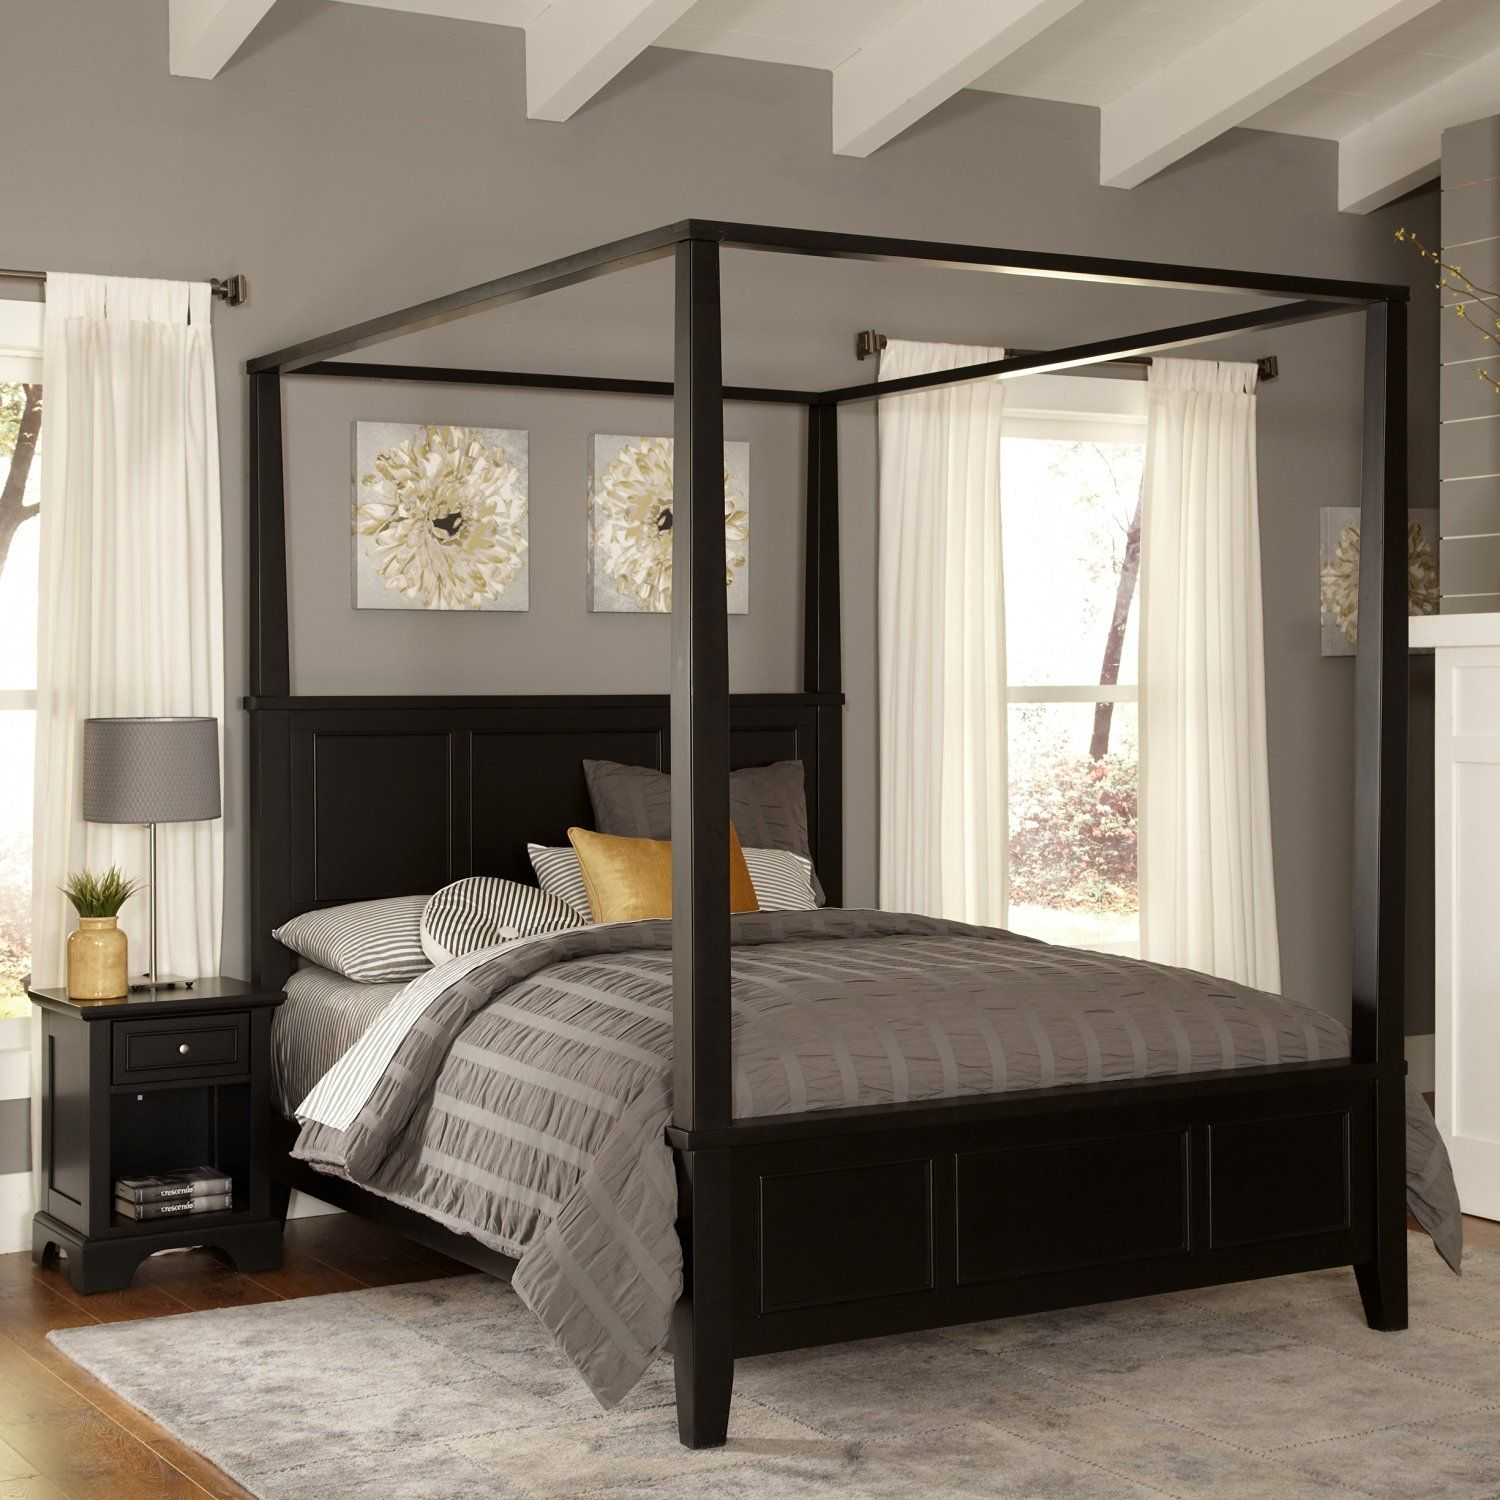 Bedroom decorating ideas Canopy Bedrooms and Furniture sets